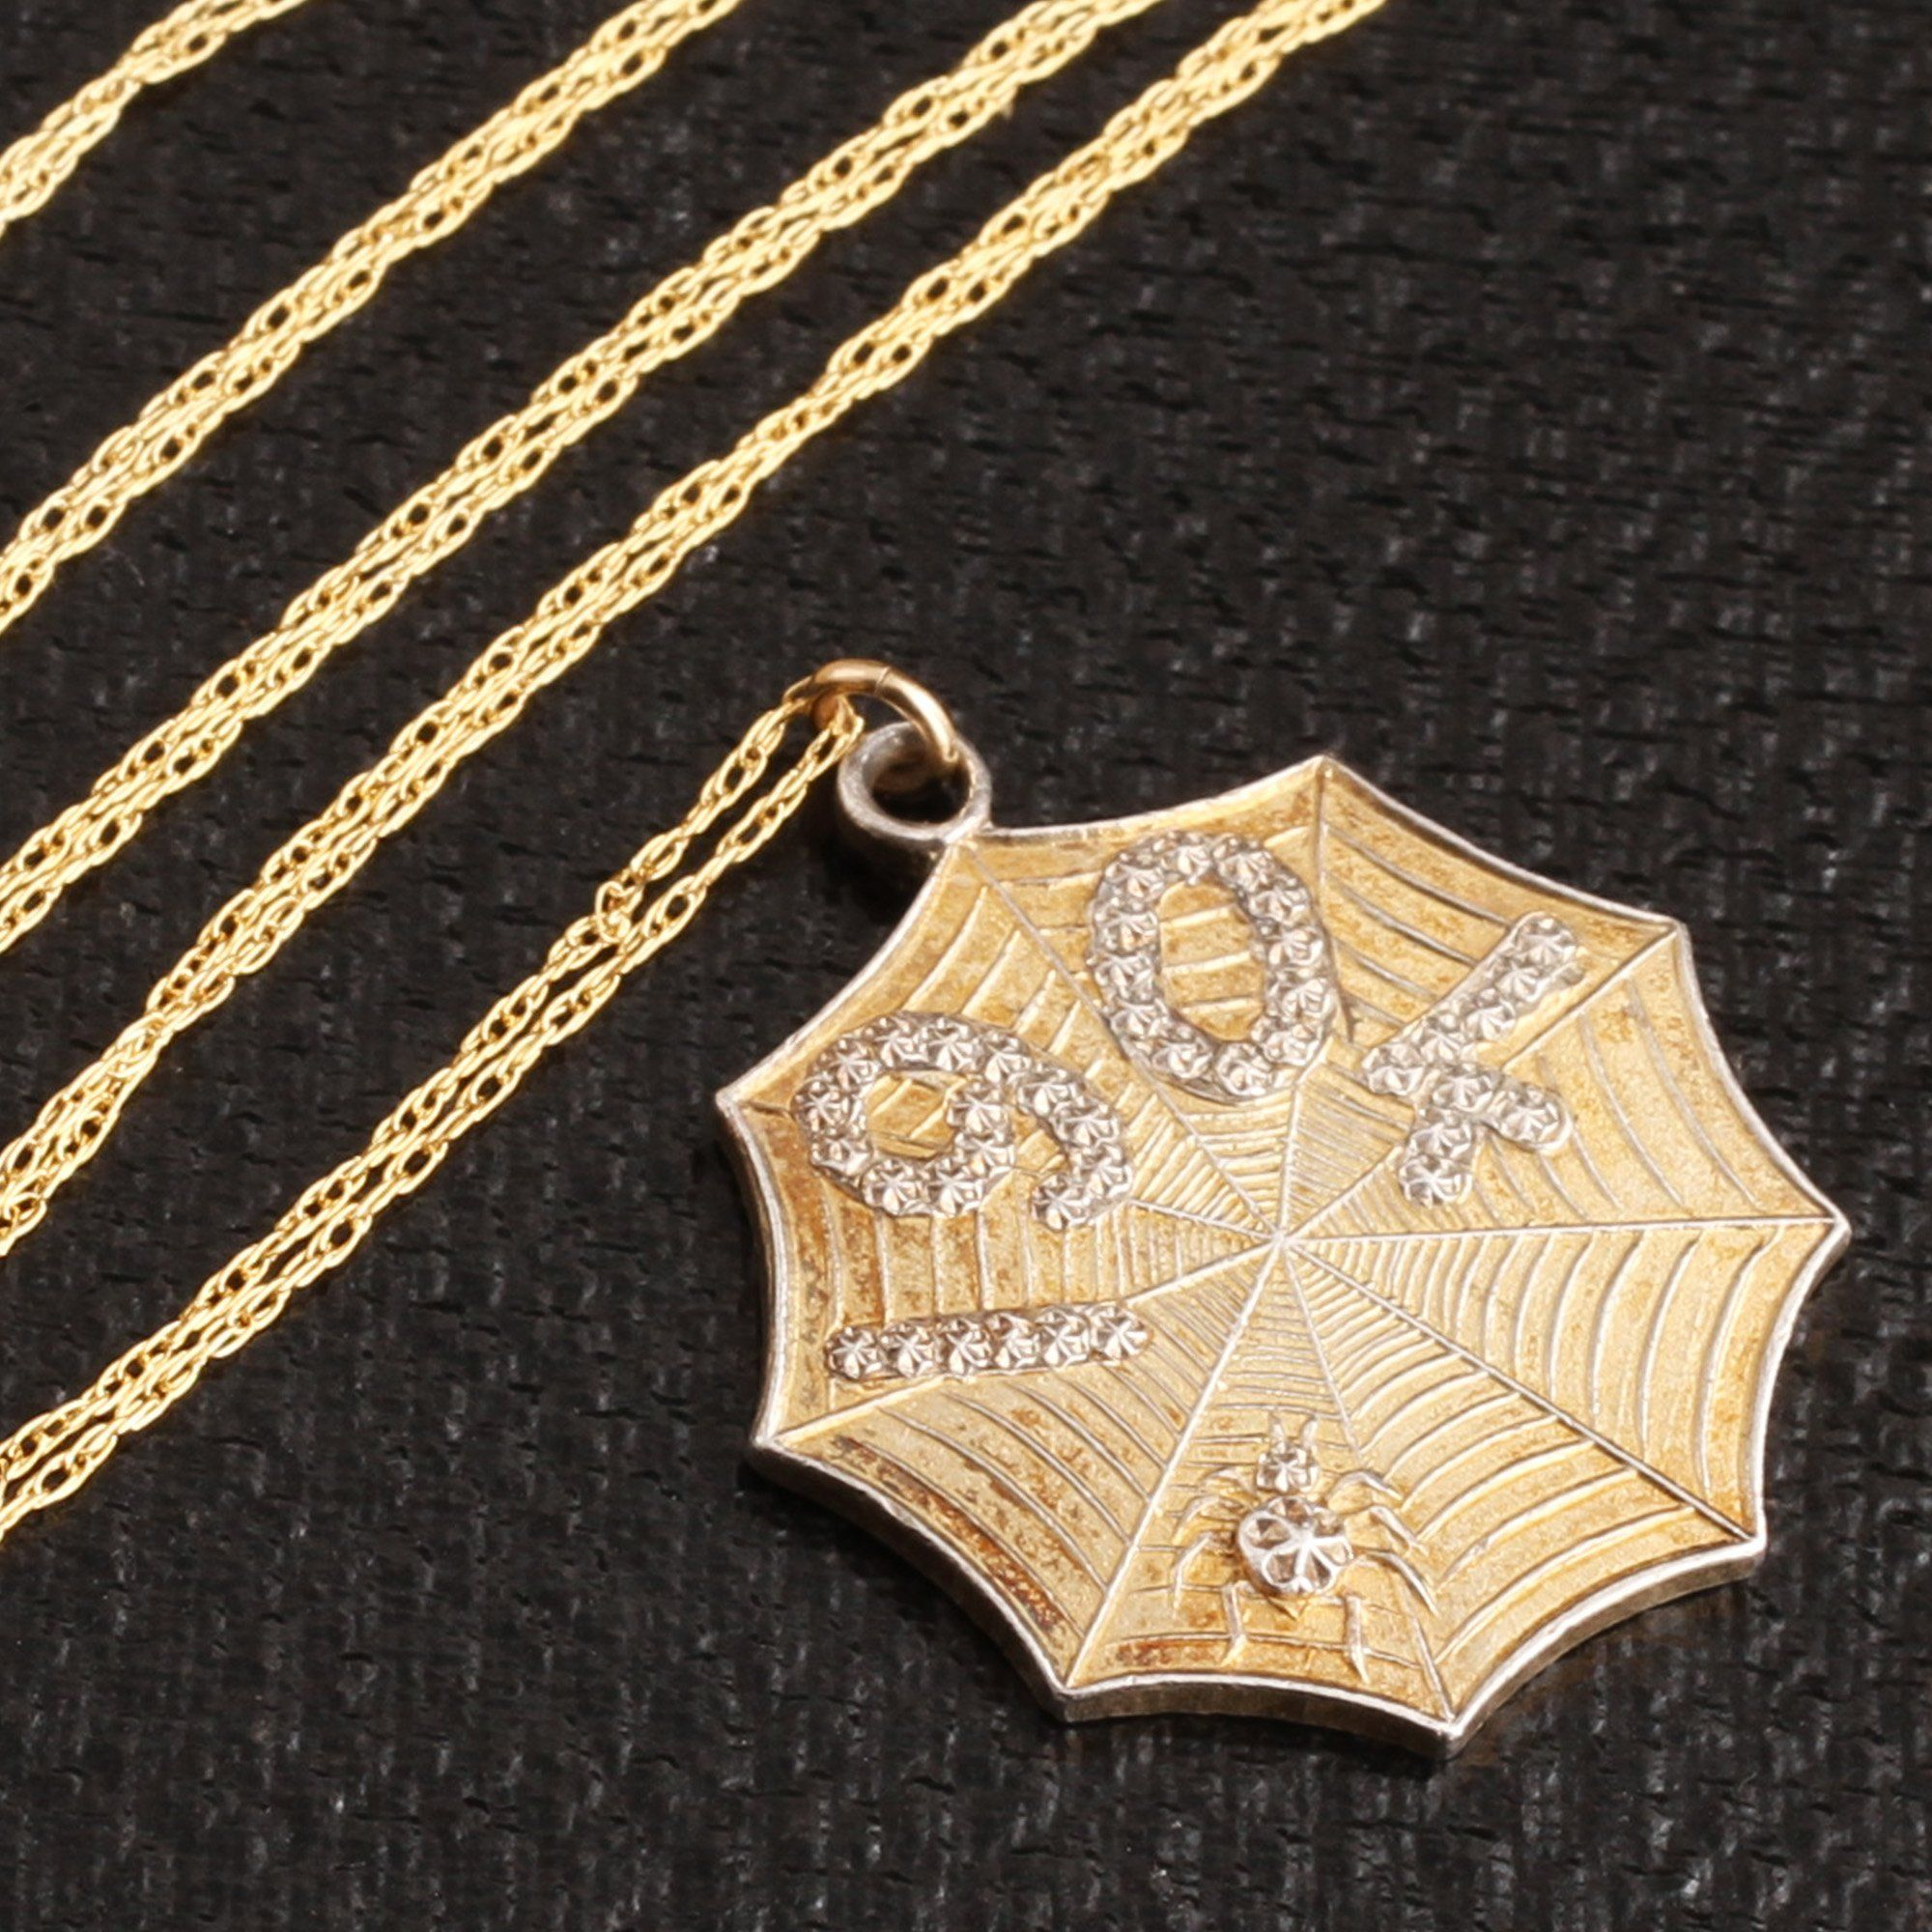 Detail of 1904 Gilt Silver Spiderweb Necklace